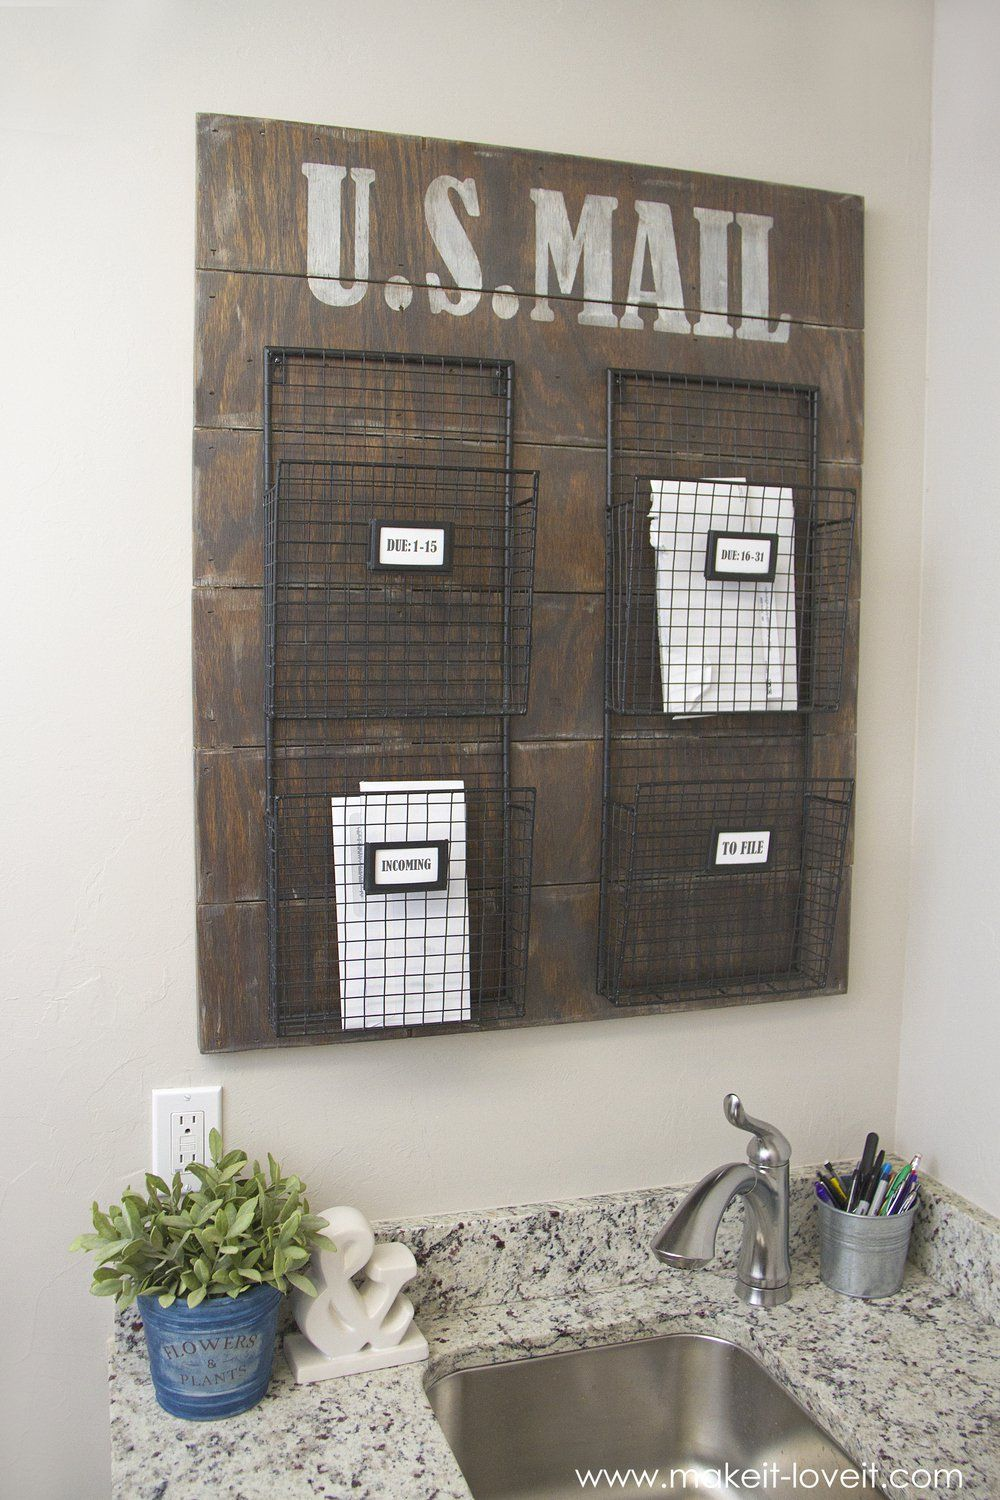 Wall Mounted Mail Organizer From S Wood Via Make It And Love